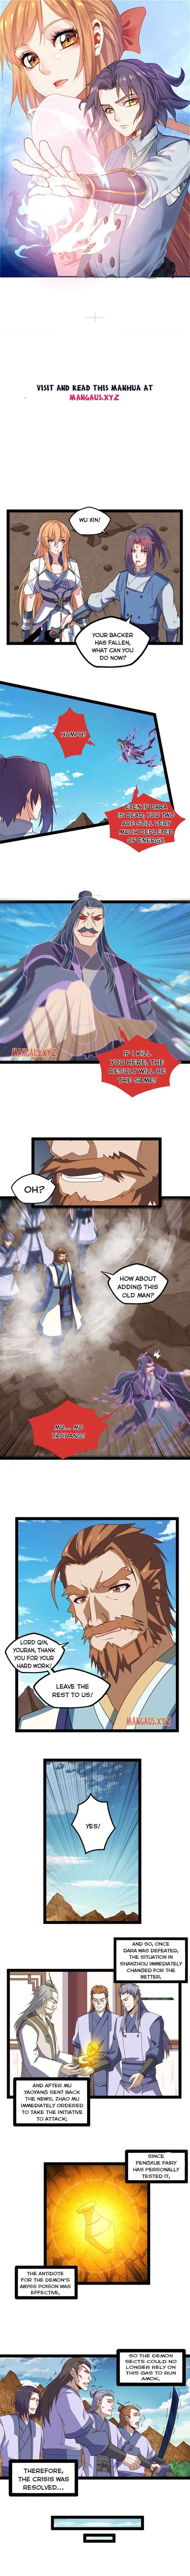 Trample On The River Of Immortality - chapter 180 - #1